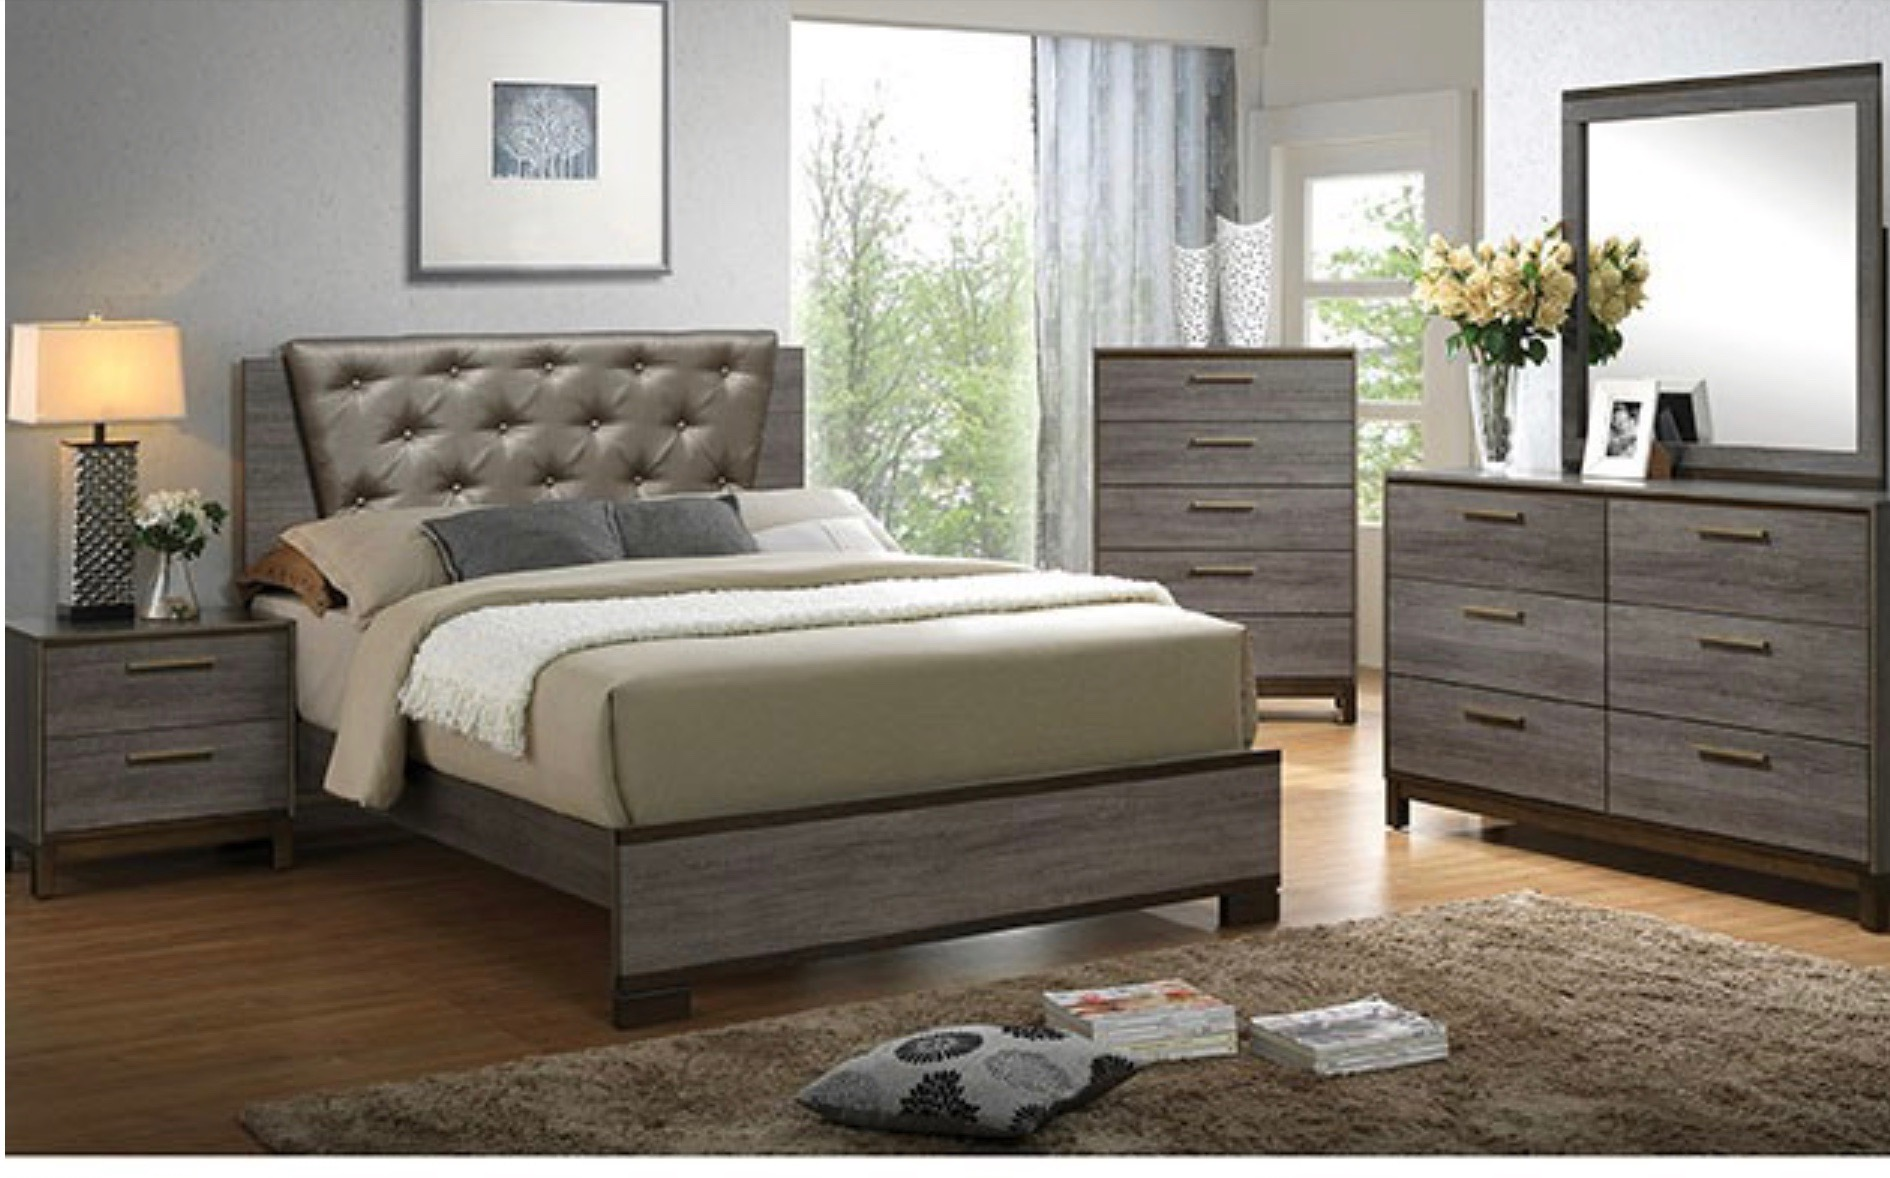 BEDROOM SET 5PC $999